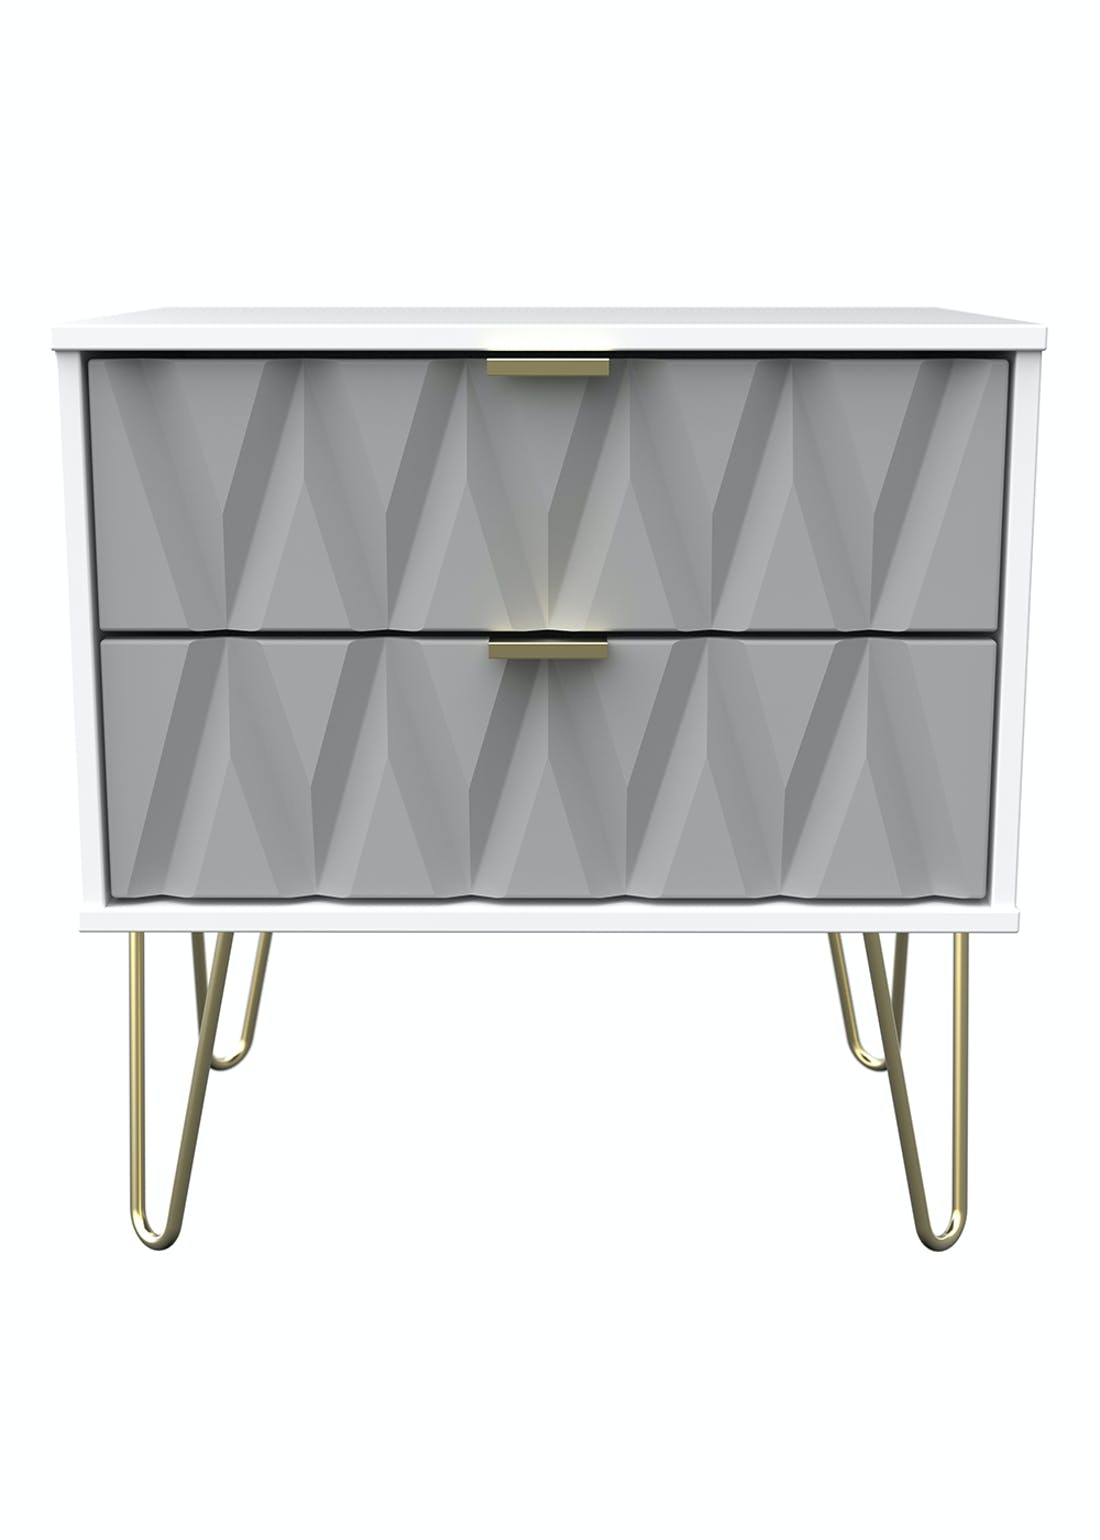 Swift Prism 2 Drawer Chest (57cm x 57.5cm x 39.5cm)